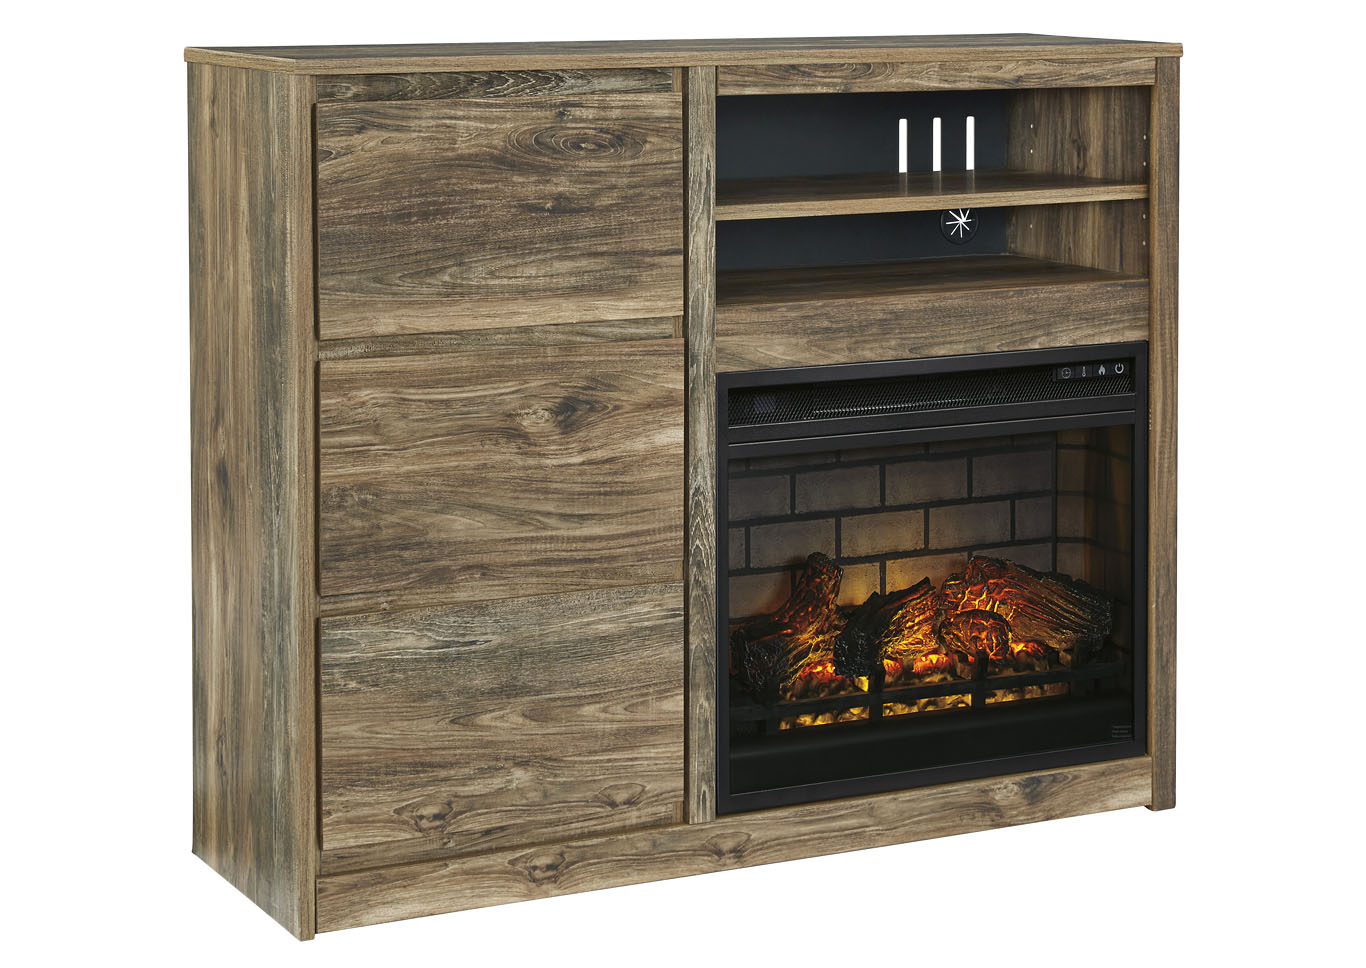 Rusthaven Brown Media Chest w/Fireplace Insert Infrared,Signature Design By Ashley